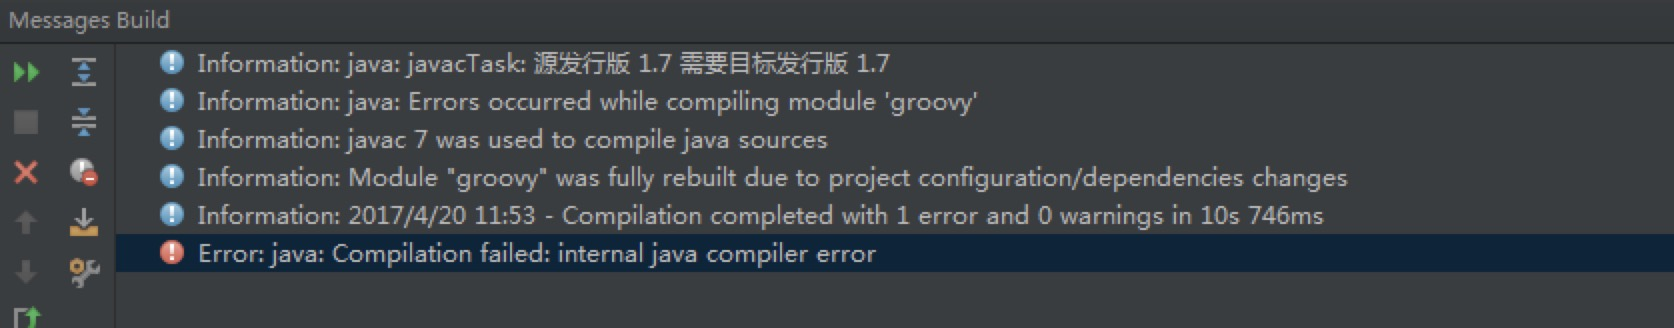 Compilation failed: internal java compiler error